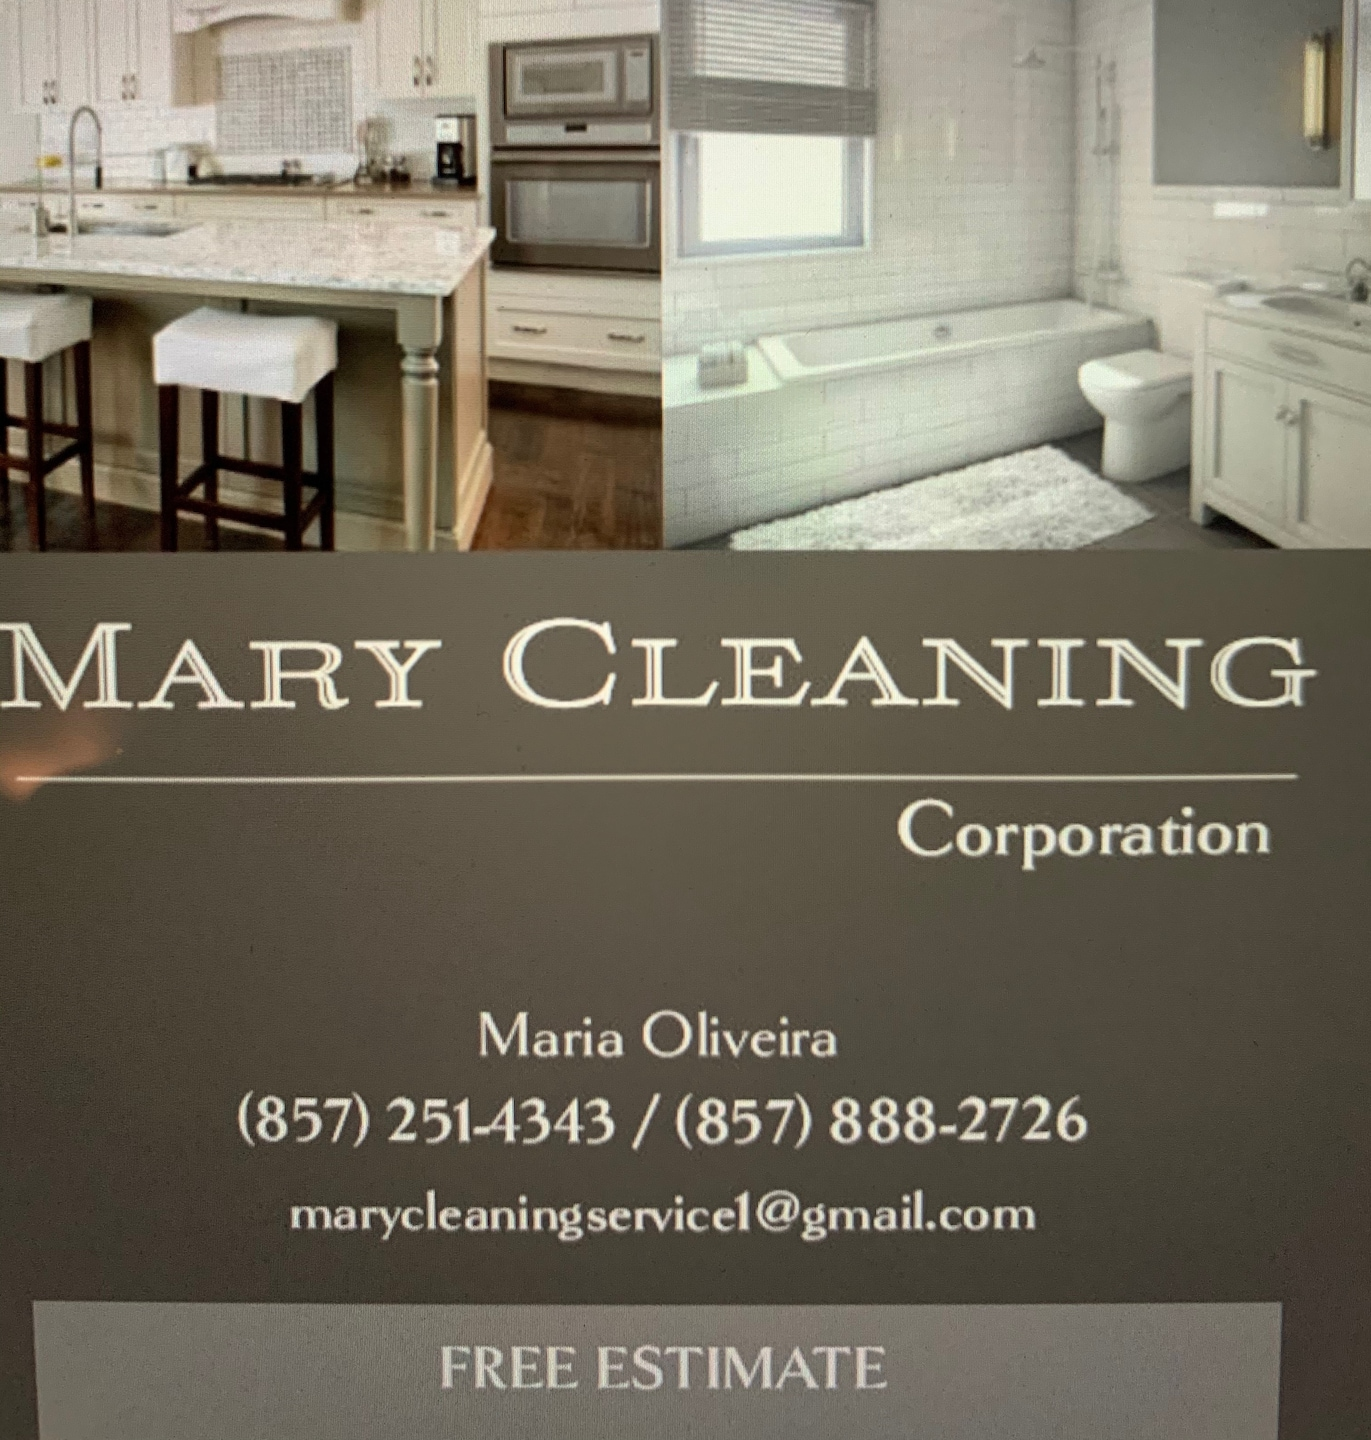 Mary Cleaning Corporation